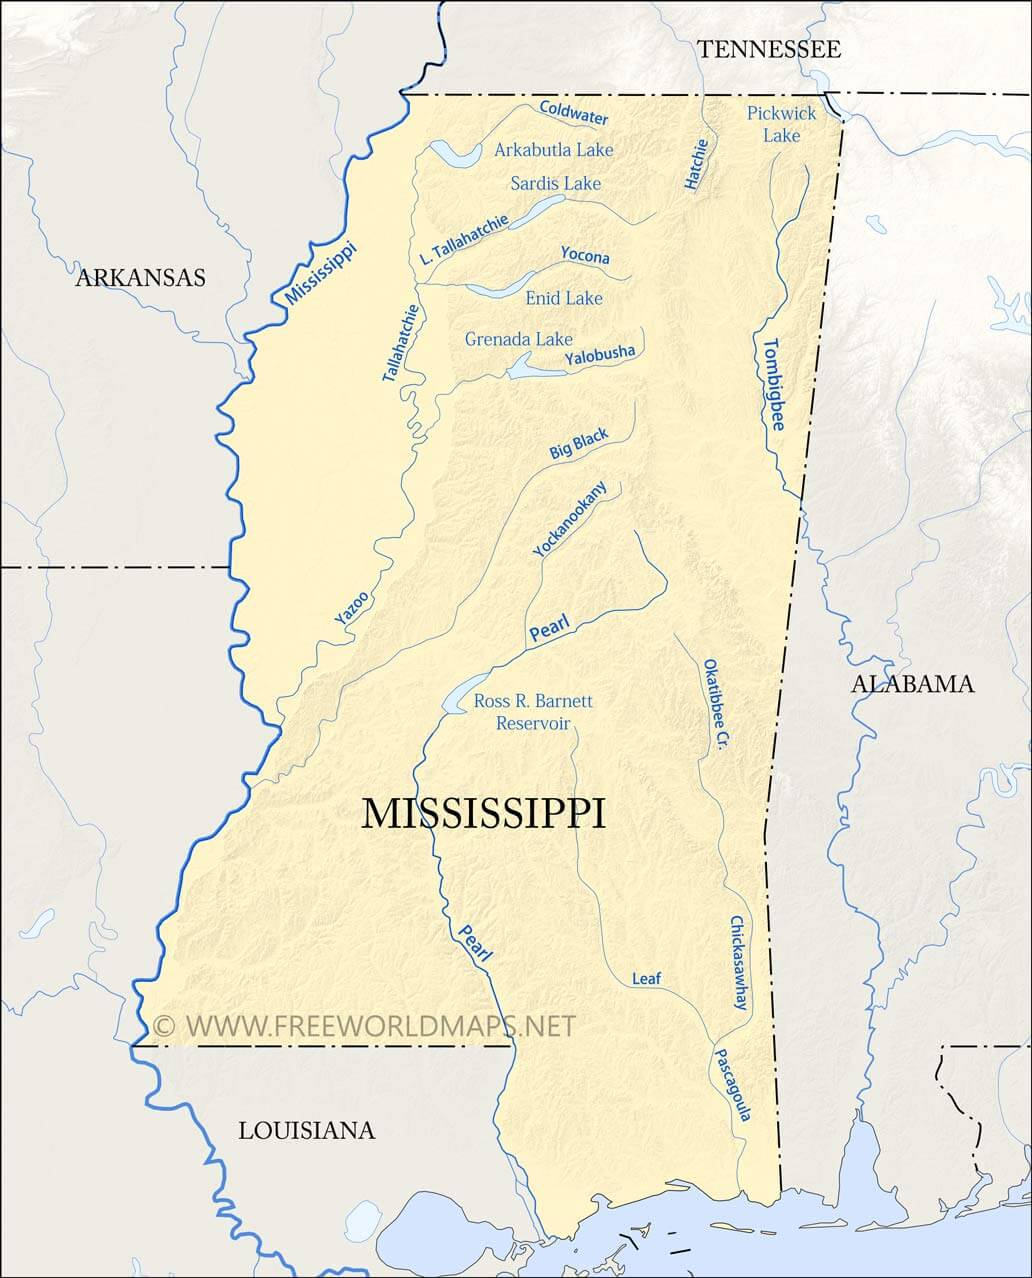 The mississippi river basin encompasses more than 40 percent of the u.s. Physical Map Of Mississippi